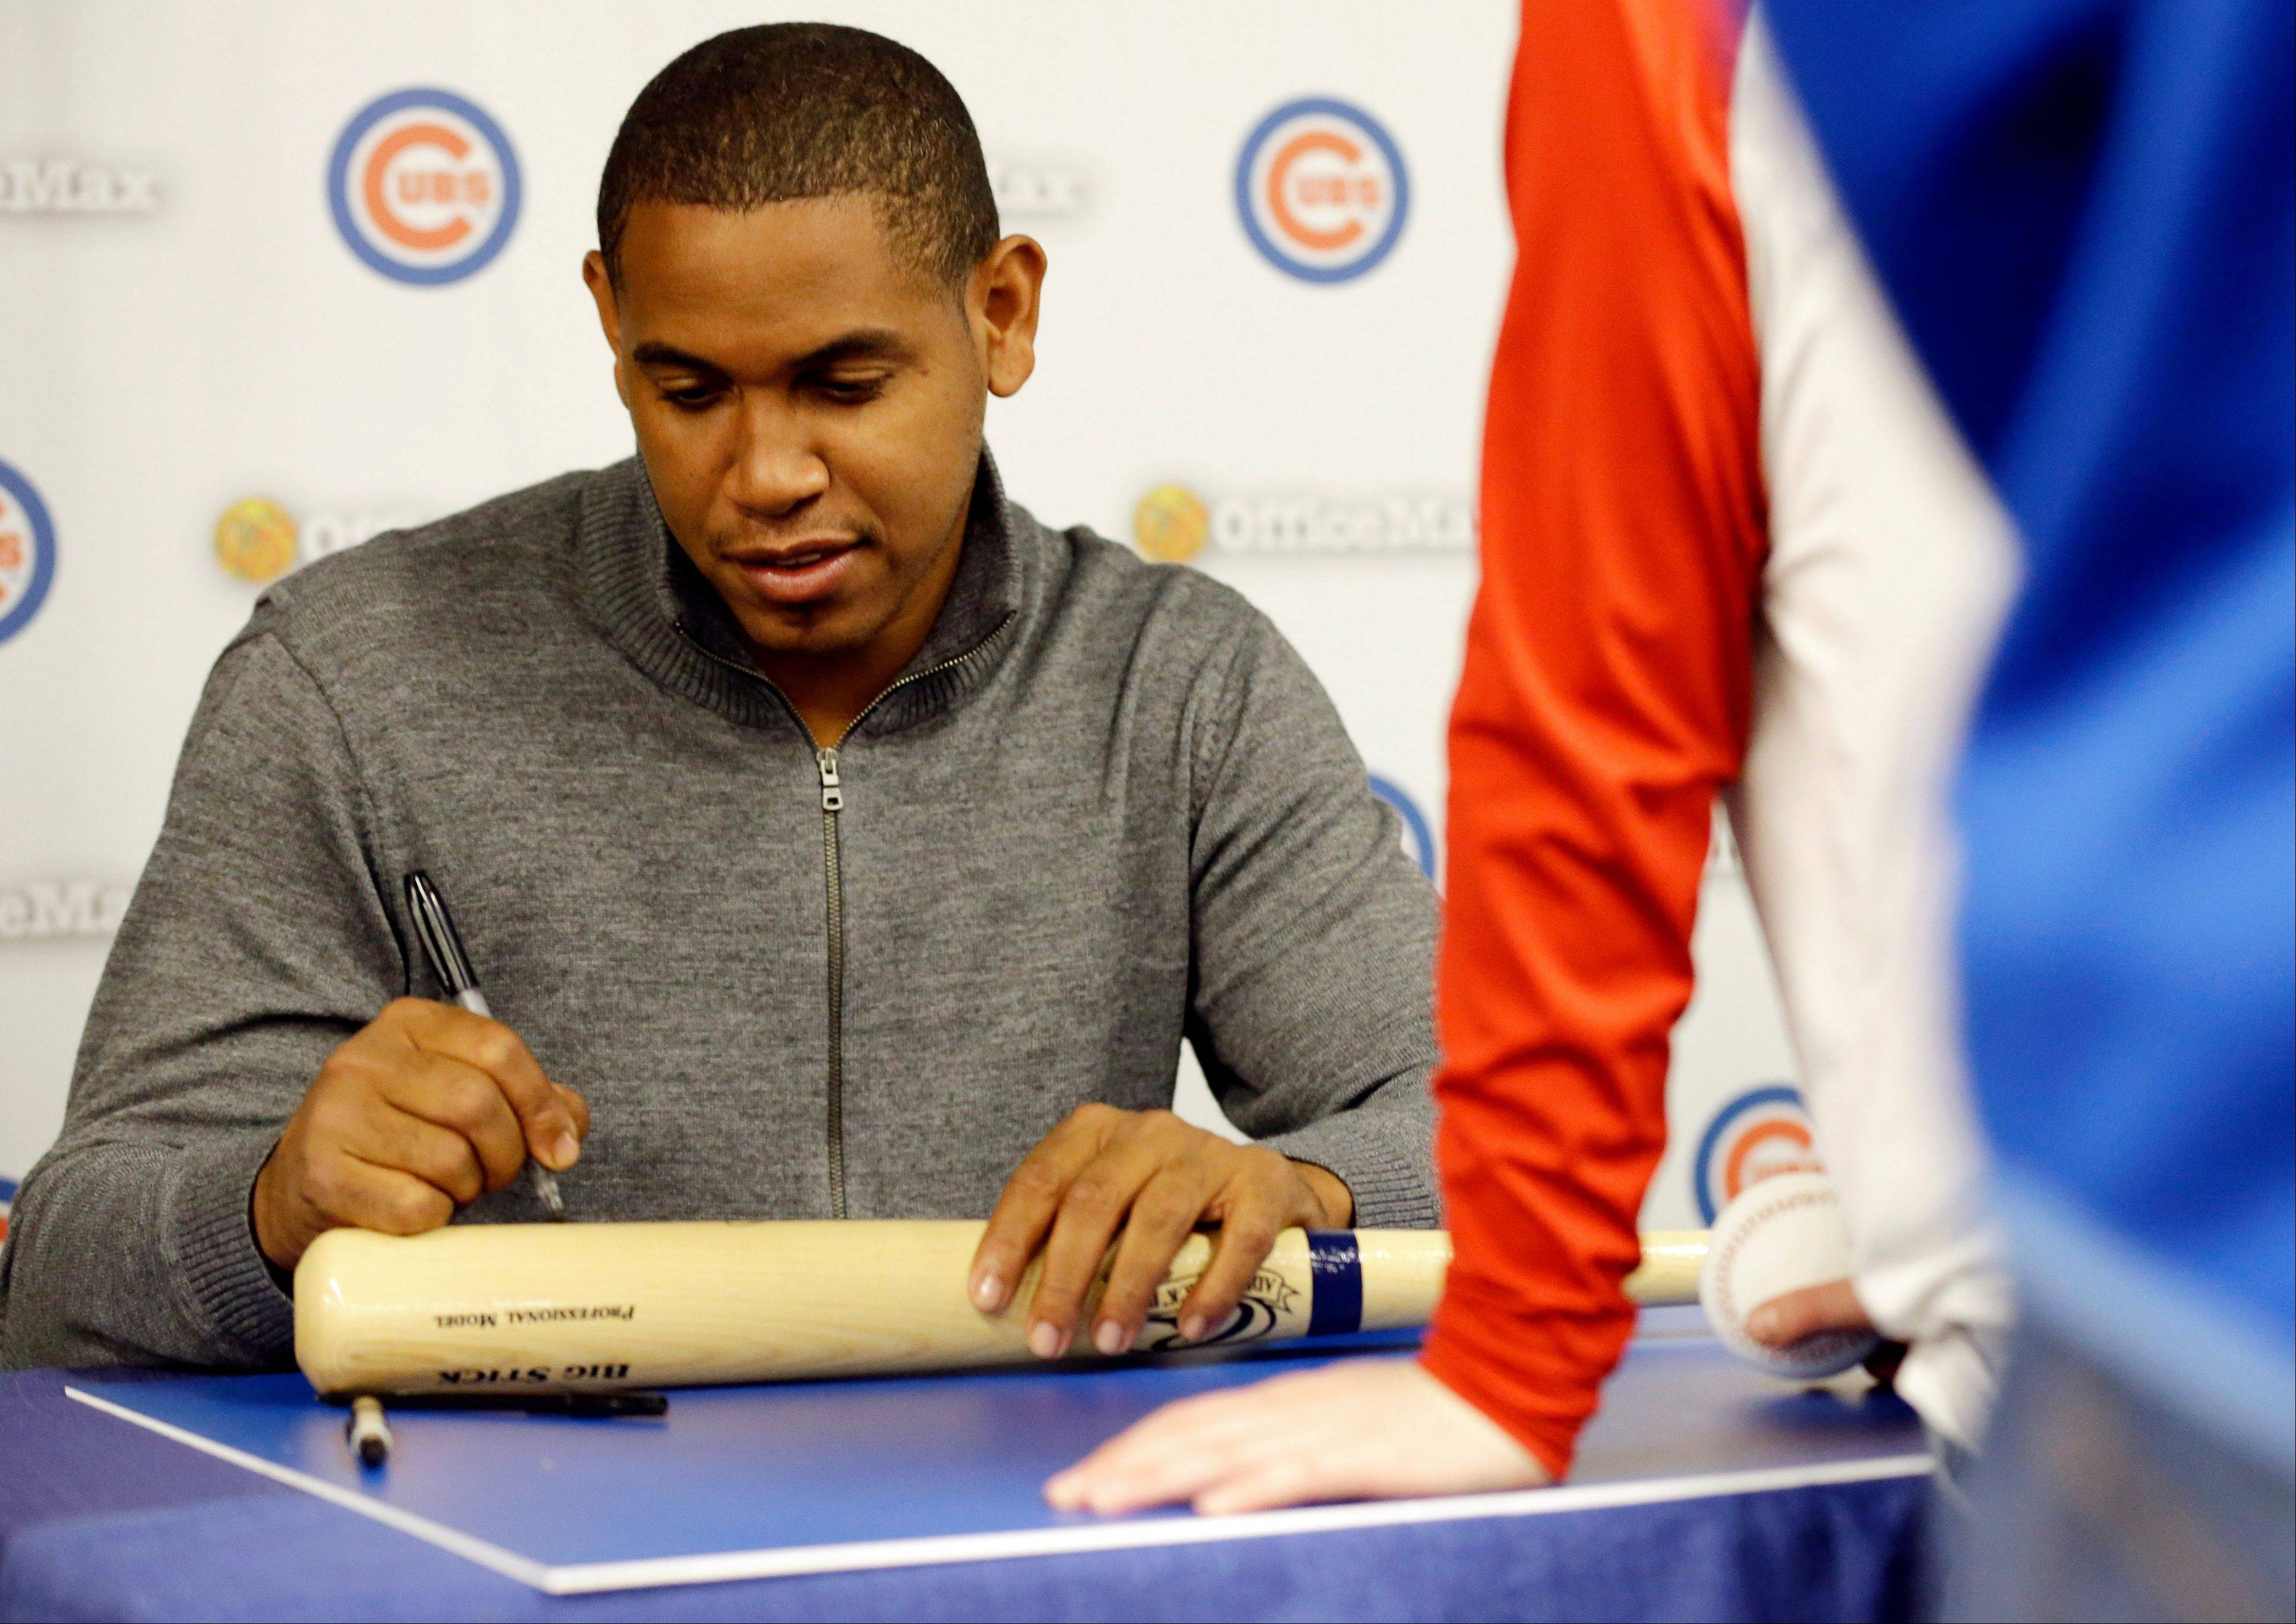 Cubs pitcher Carlos Marmol signs autographs for fans during the Cubs Convention on Friday in Chicago.